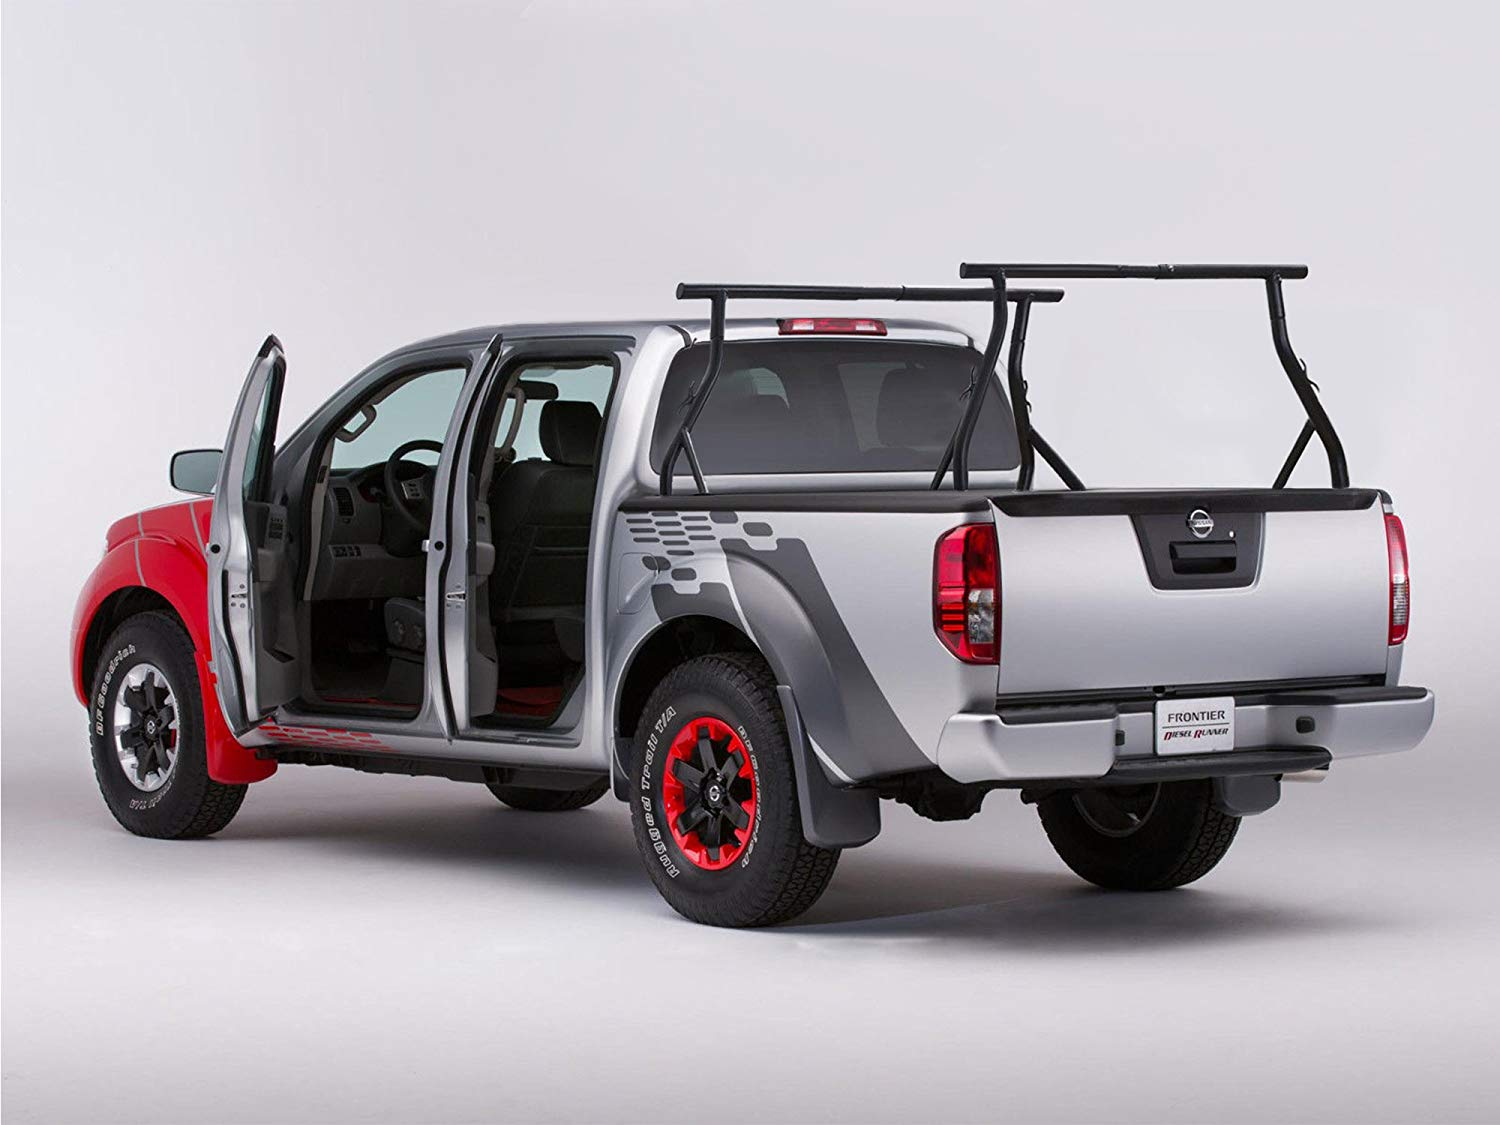 Truck with a Bed Rack Installed